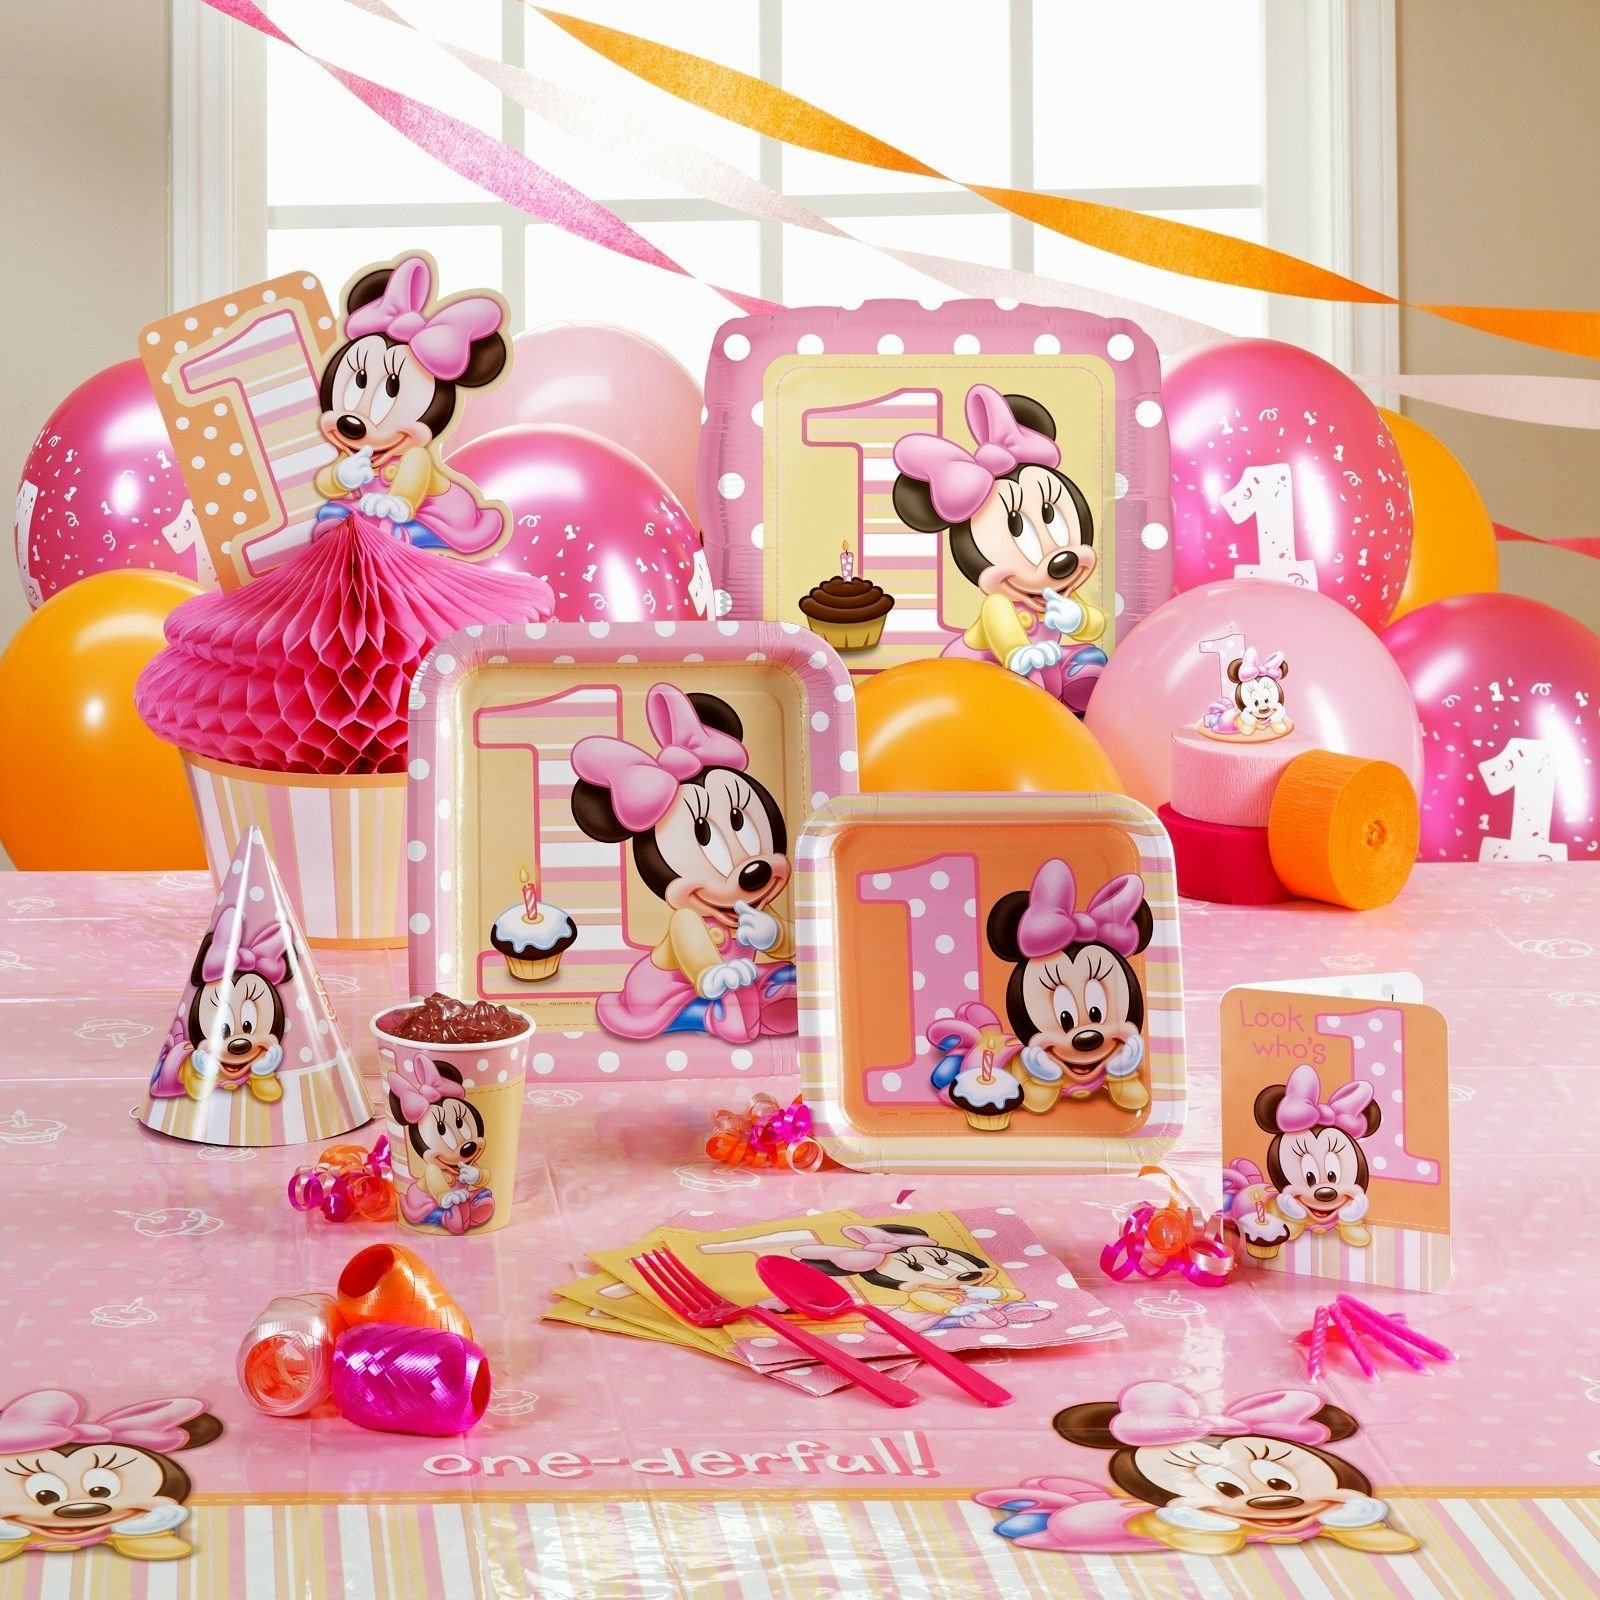 10 Fantastic Ideas For 1 Year Old Birthday Party Themes